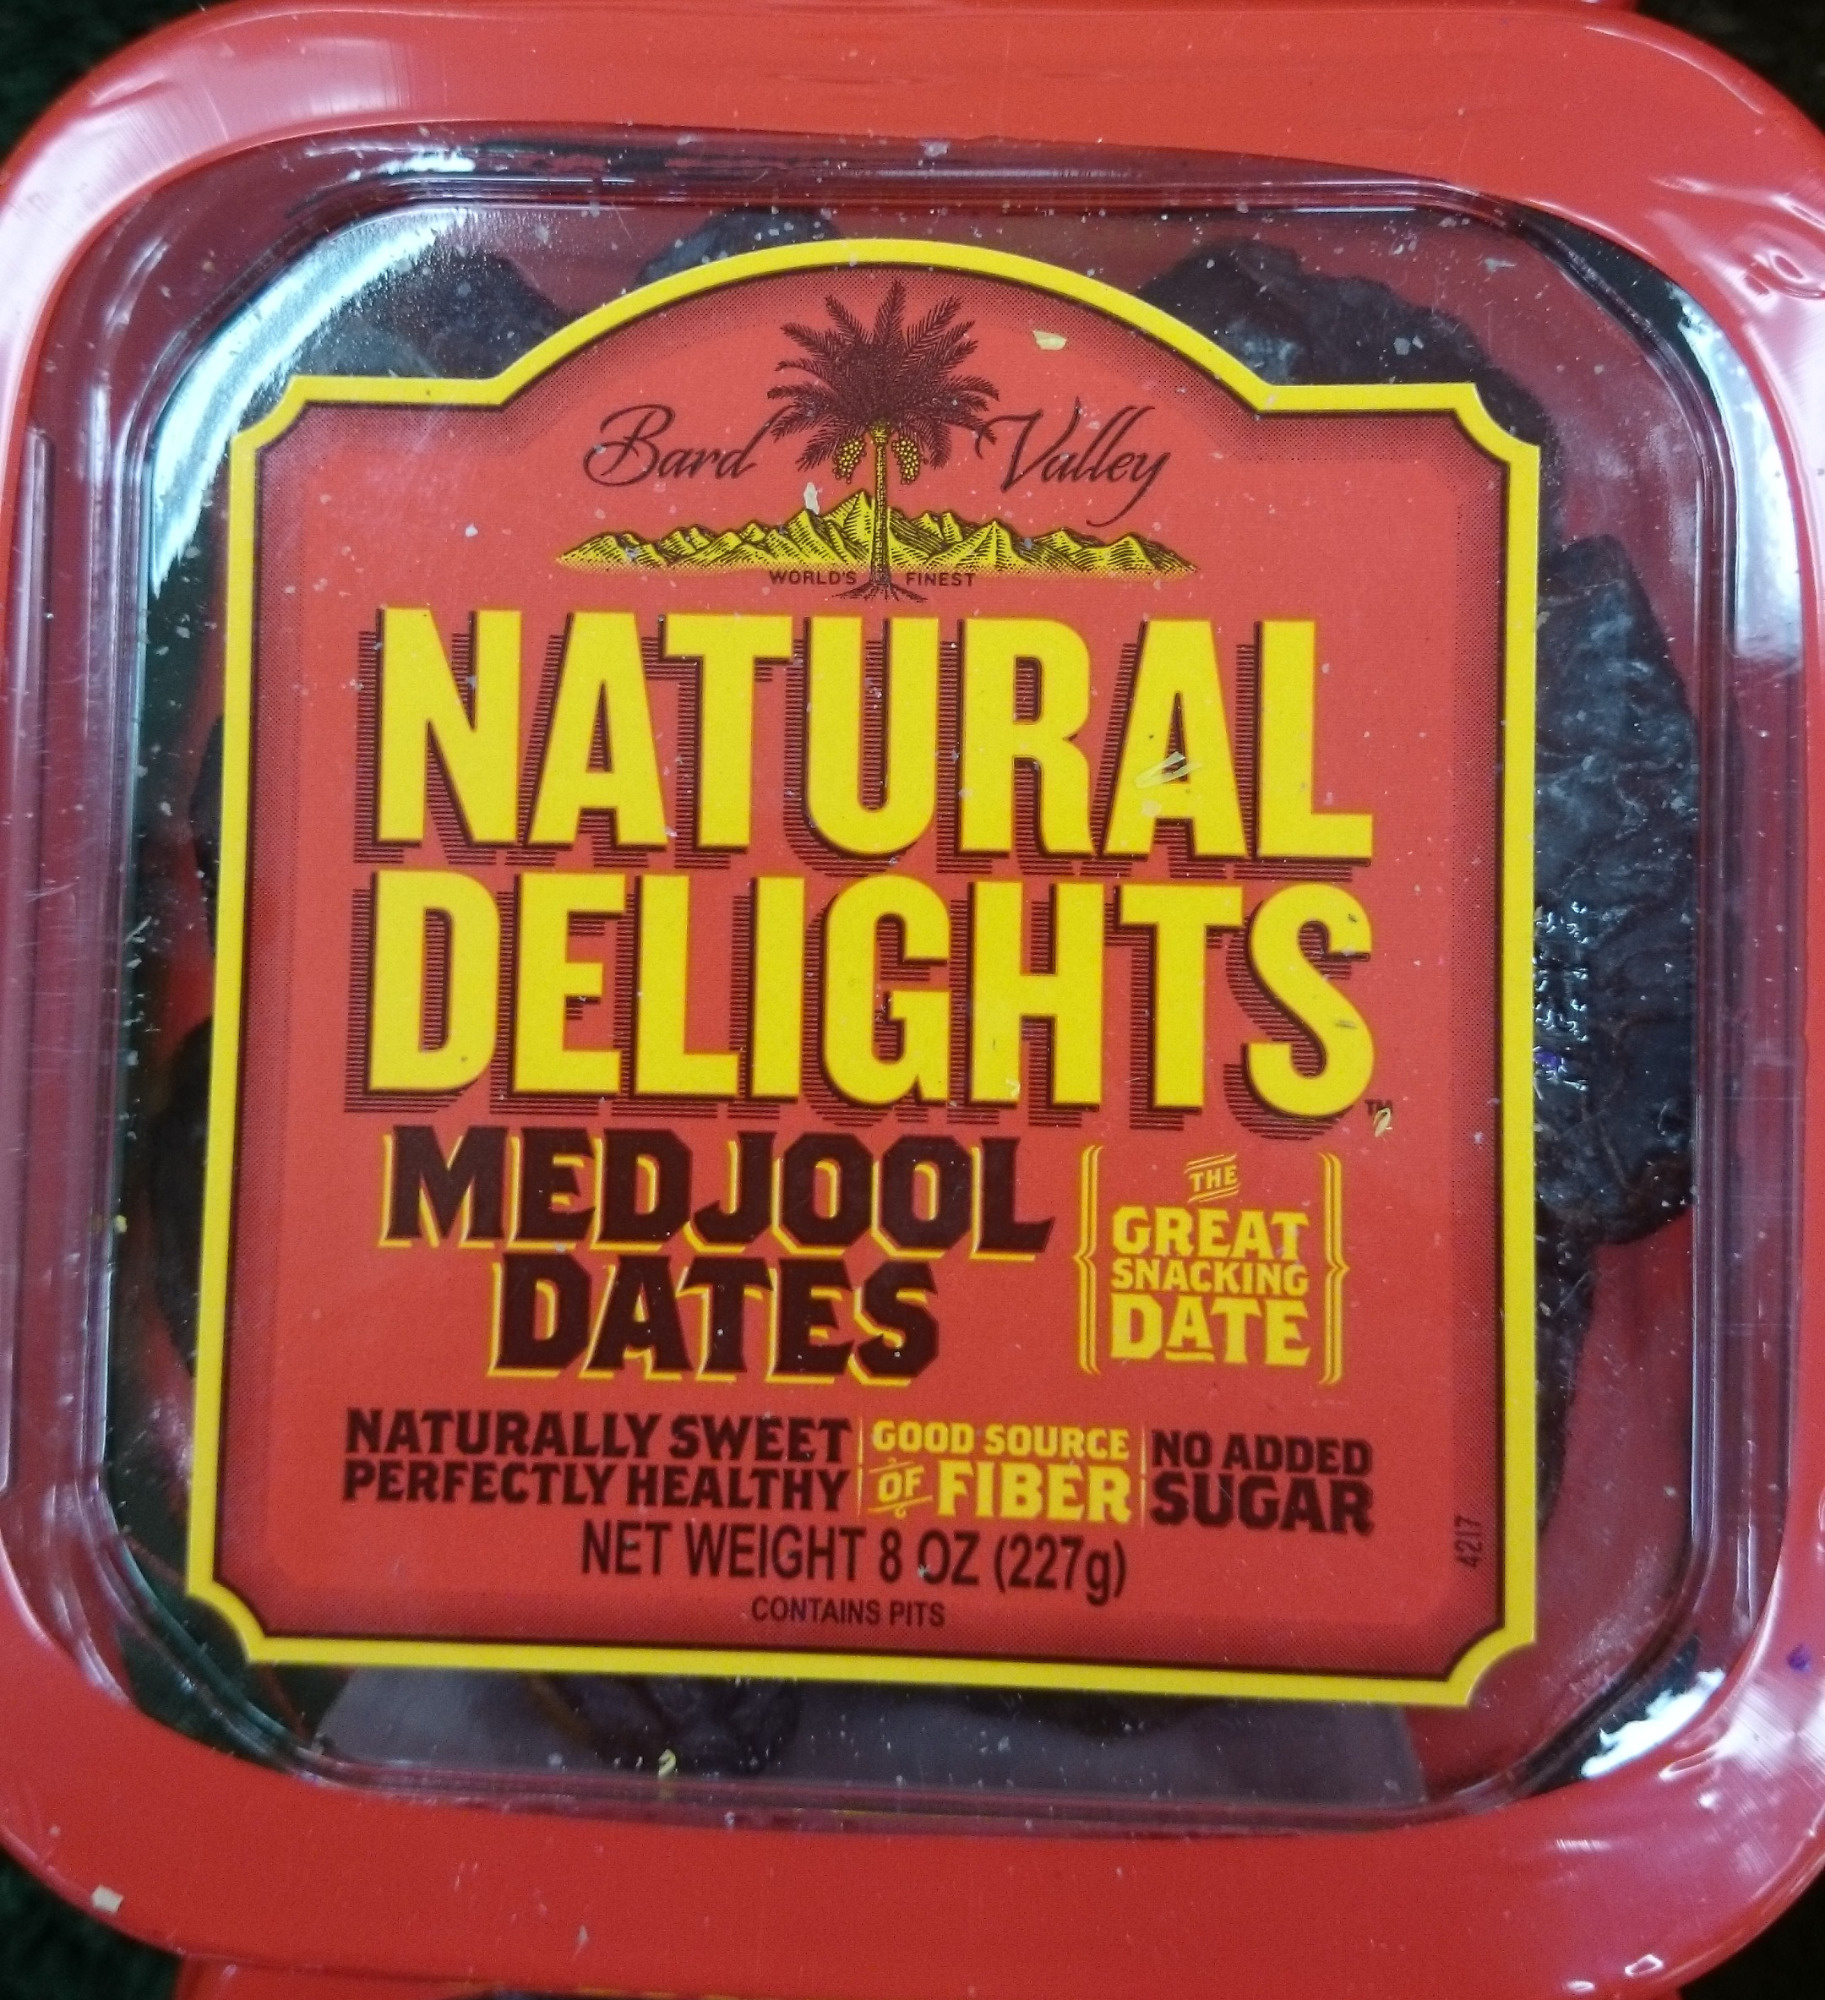 Bard valley natural delights, medjool dates - Product - en